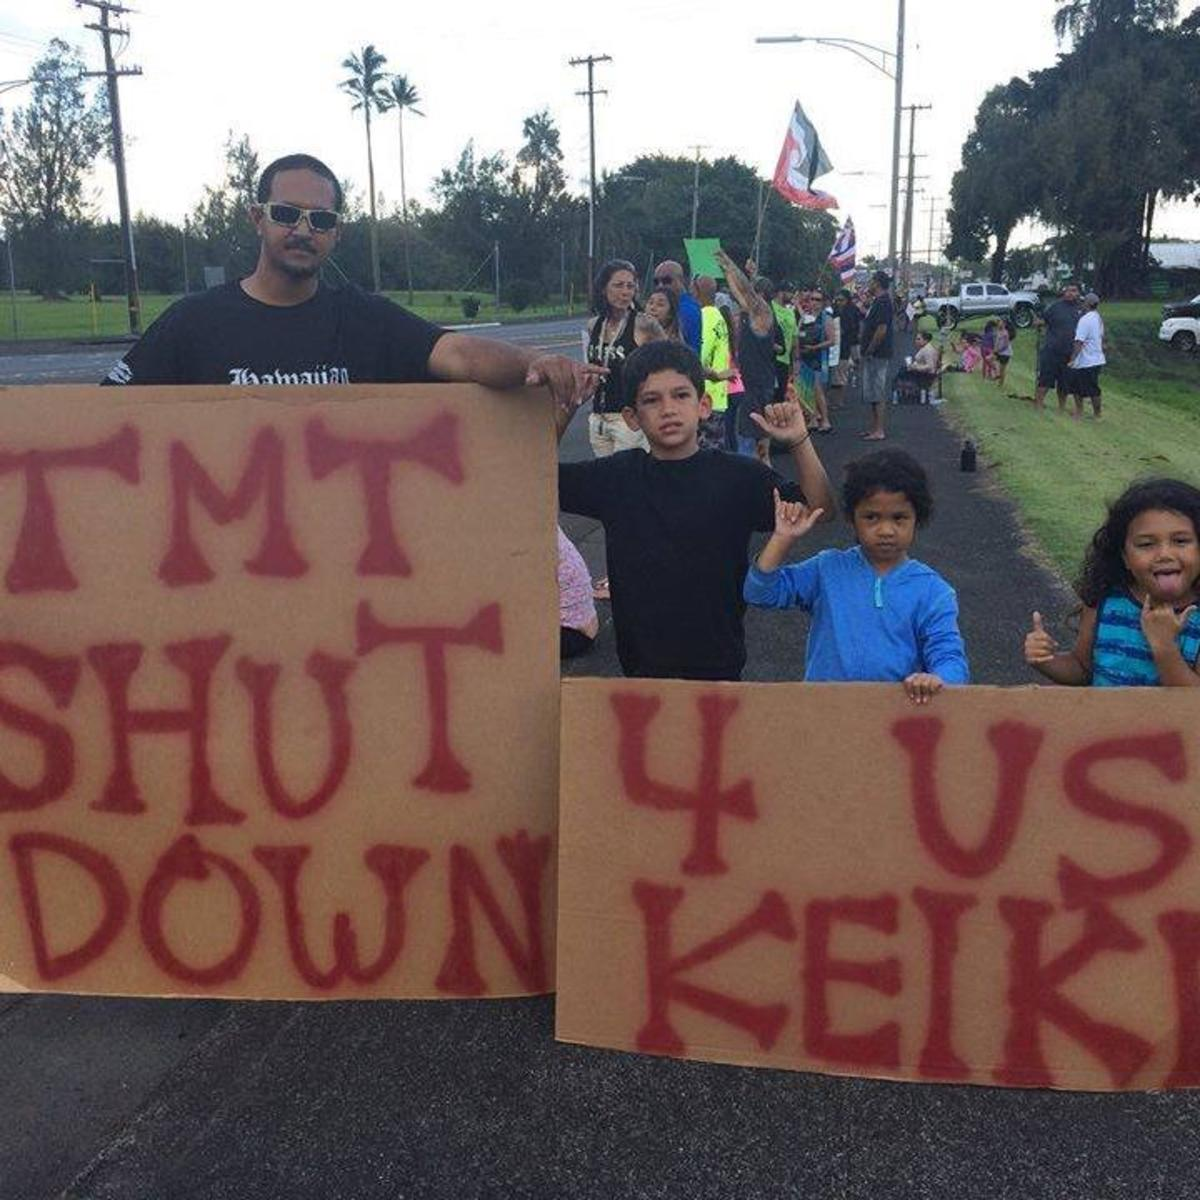 A family protesting construction of the thirty-meter telescope on Mauna Kea's summit.